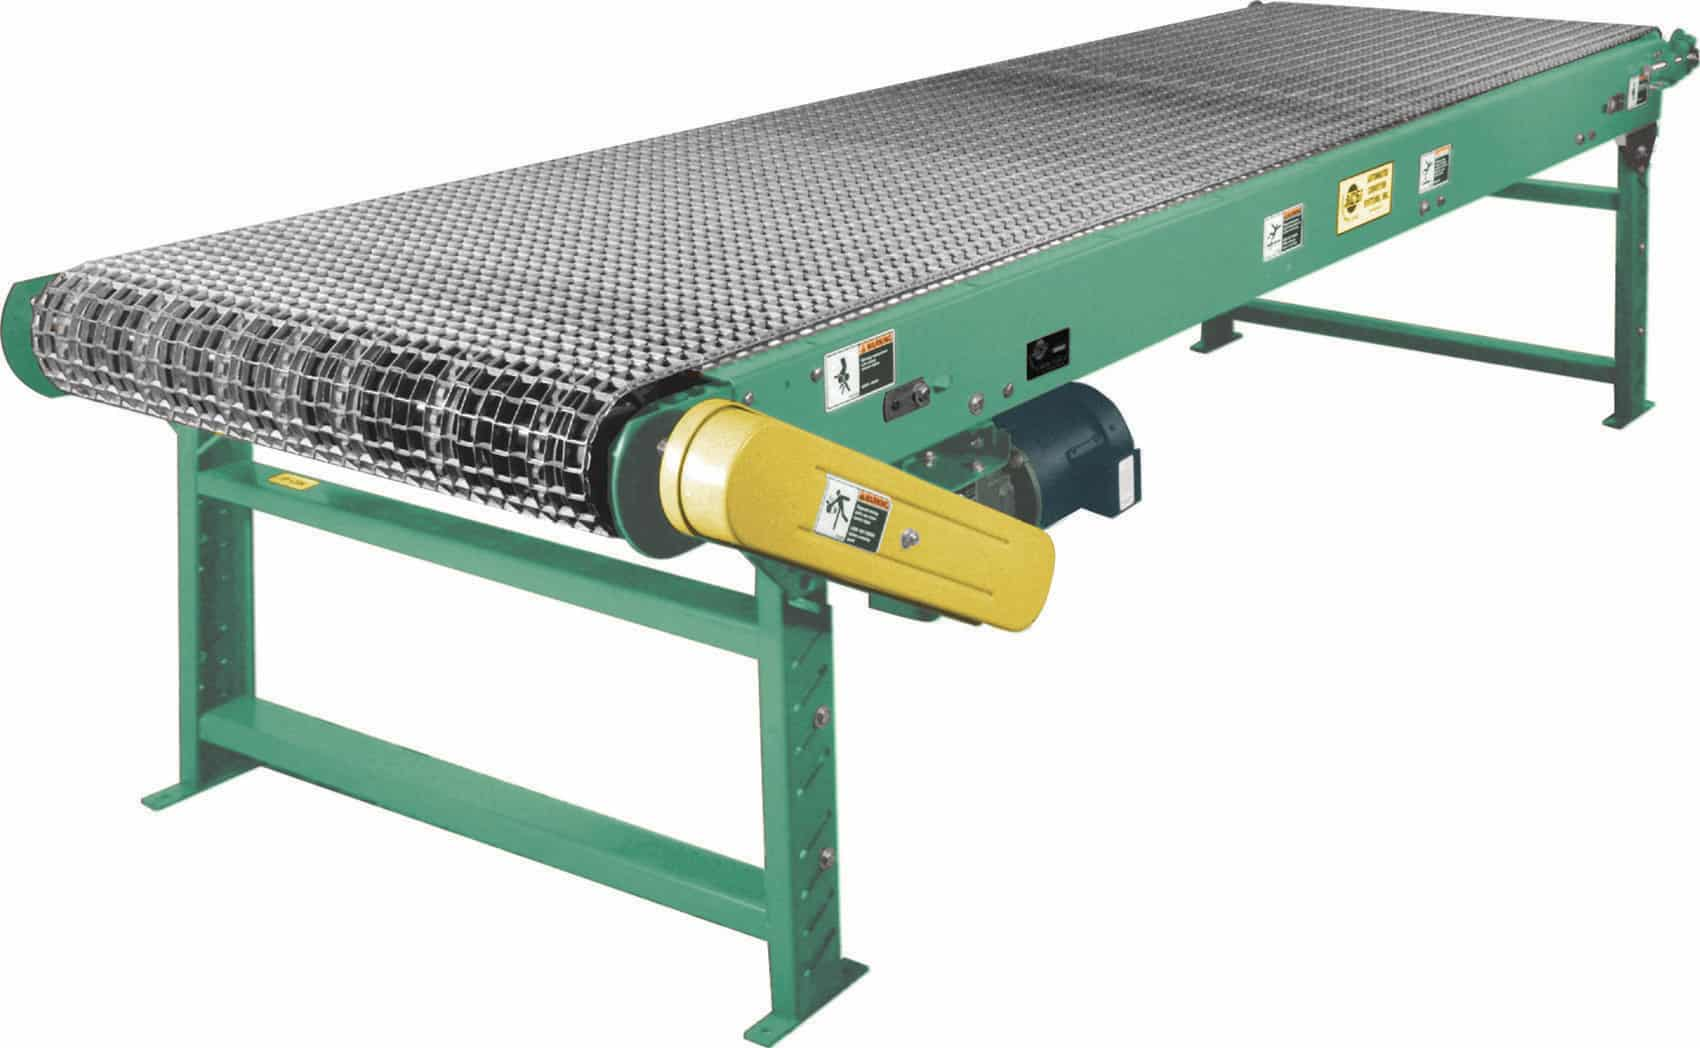 Roller conveyor belt - photo#18